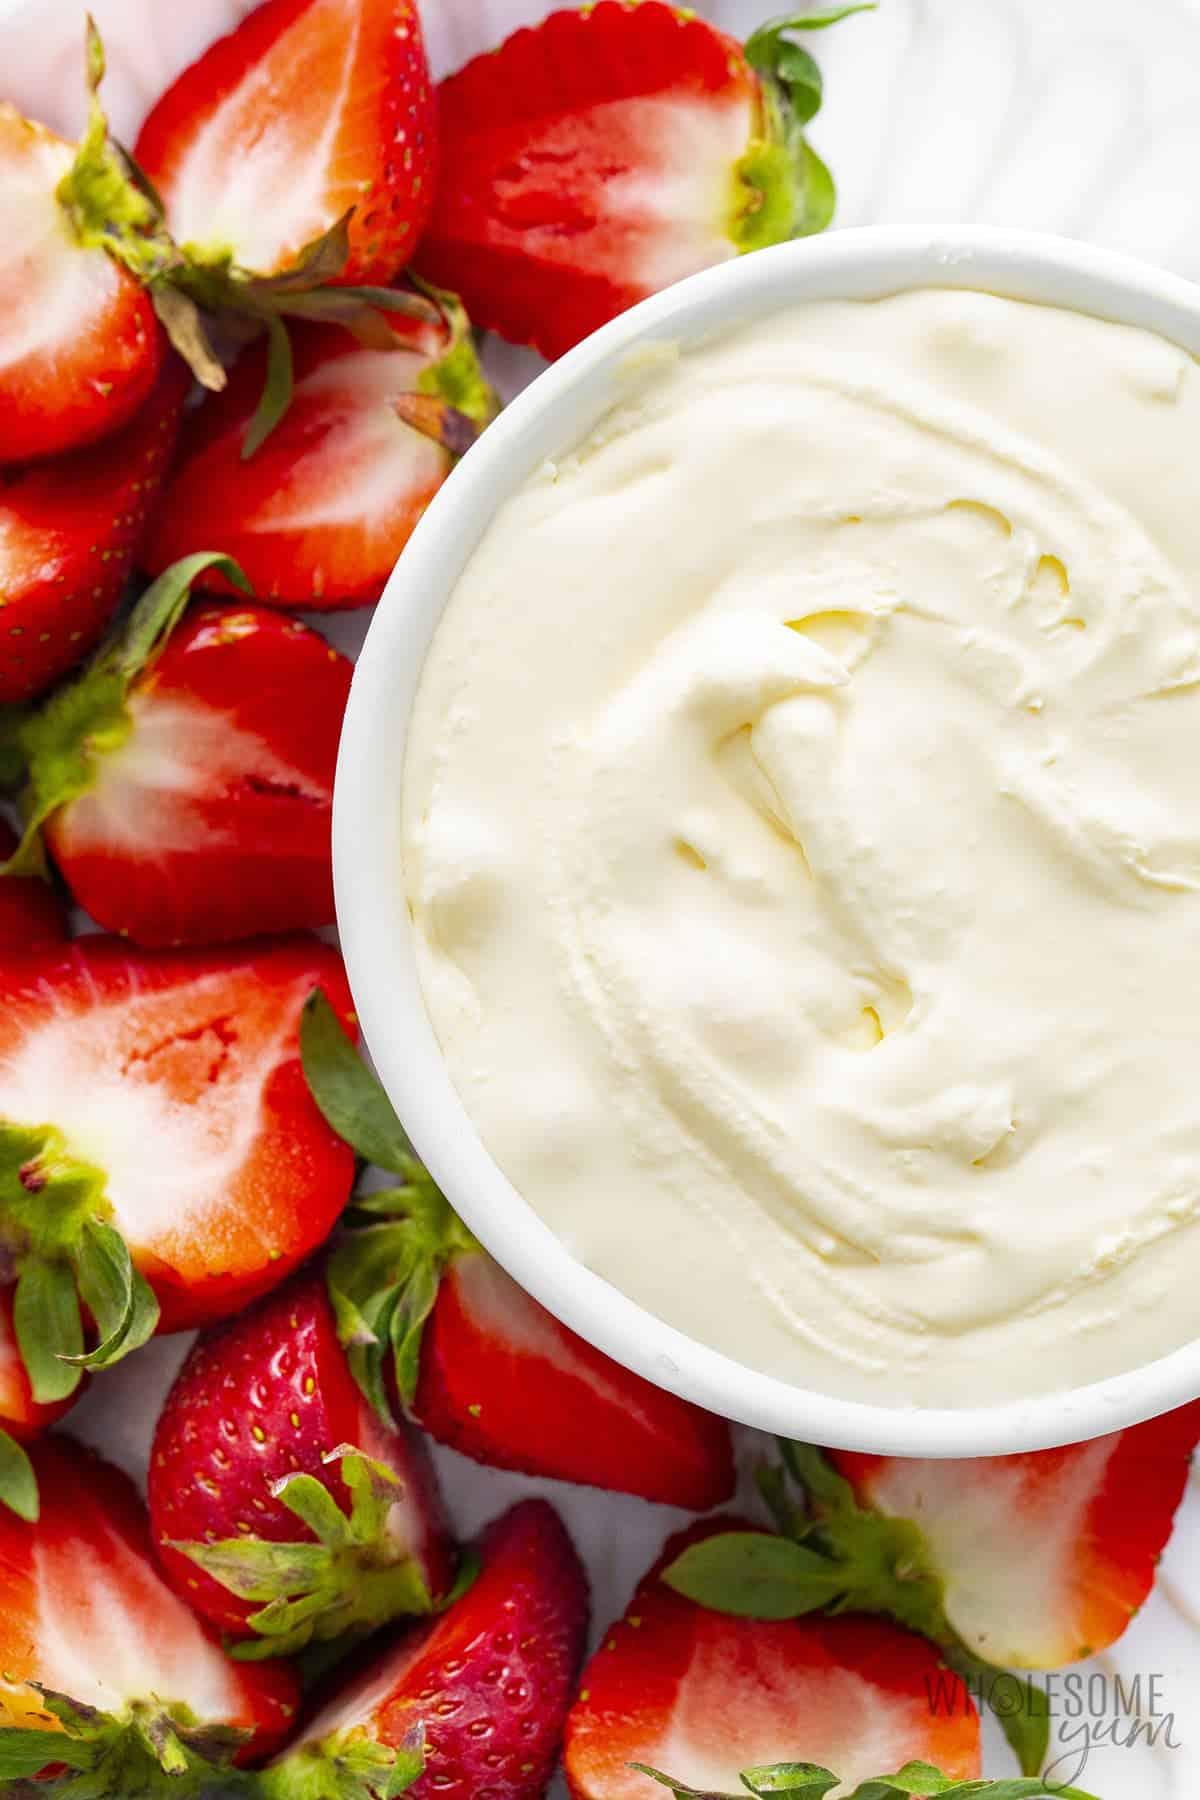 Mascarpone cheese in a bowl next to a plate of strawberries